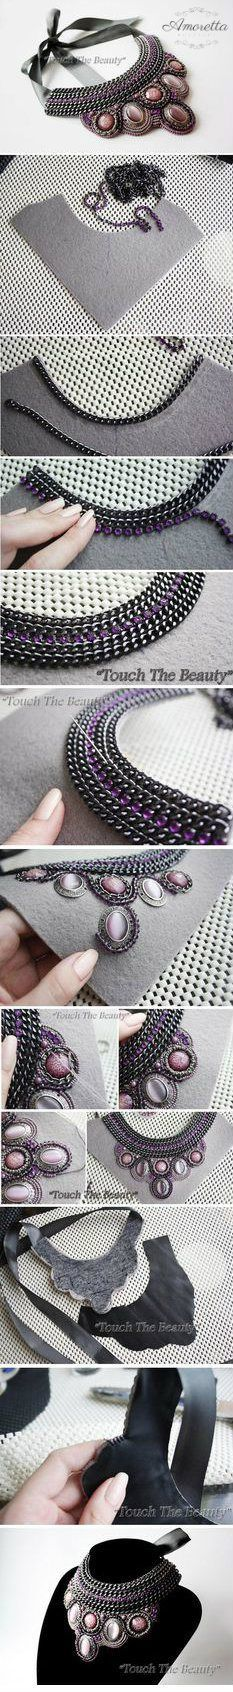 I'm normally not a fan of such big jewellery, but I love the concept of this!